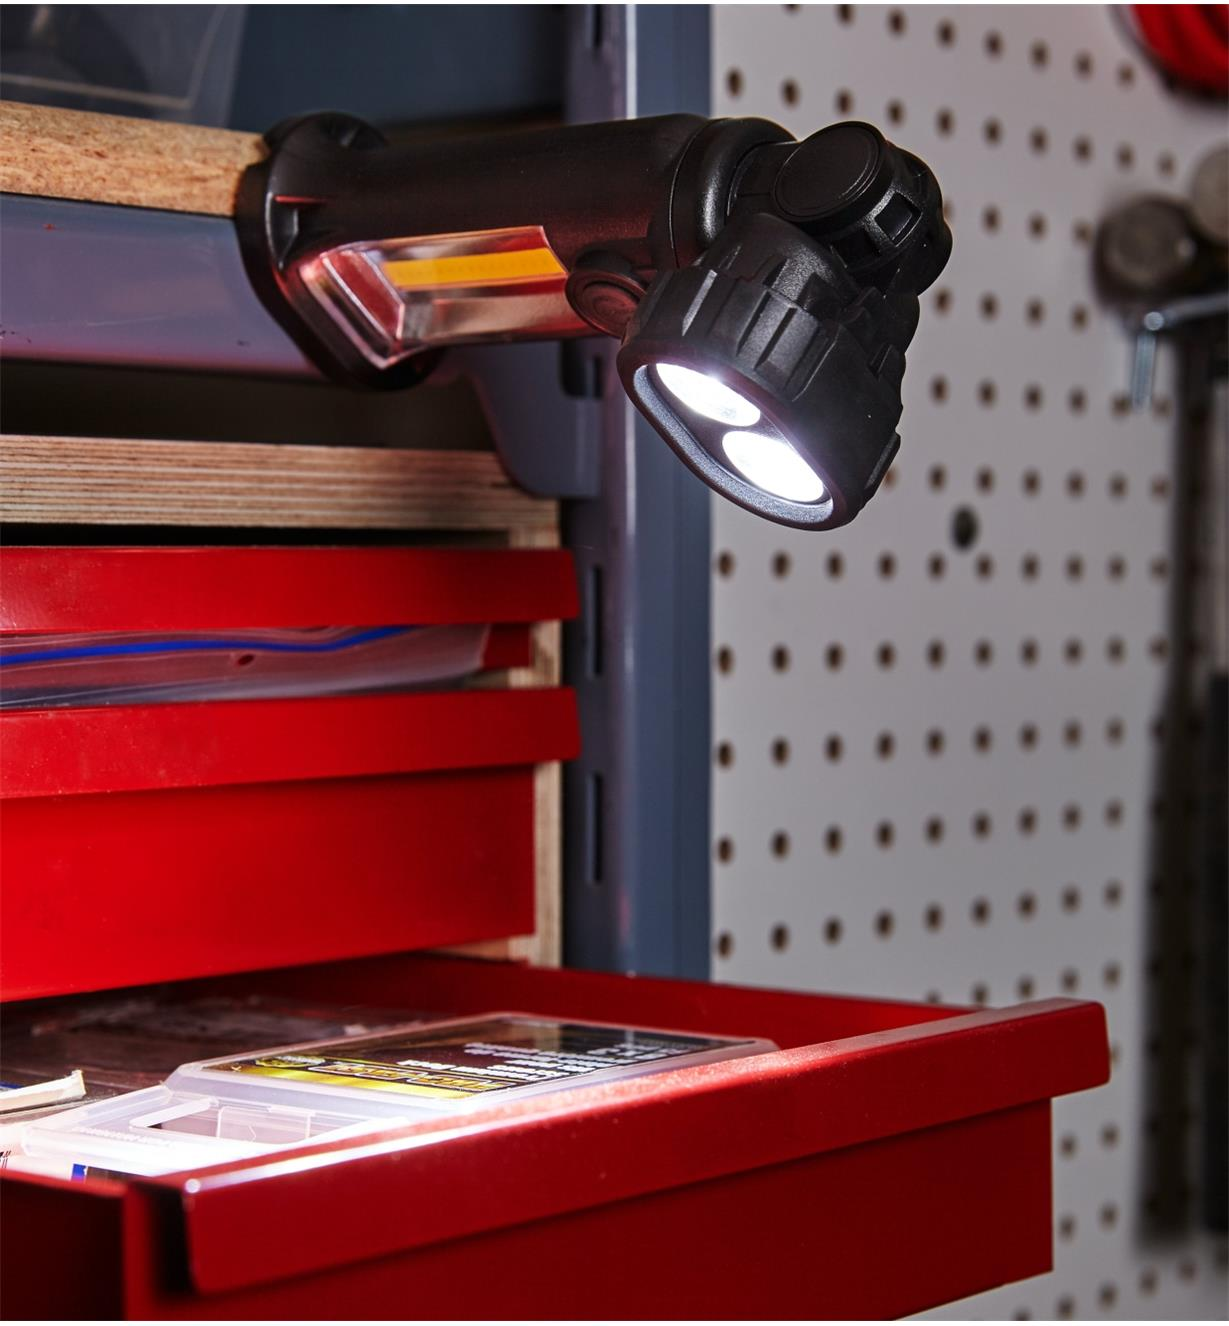 Easy-to-Aim Work Light affixed to metal shelving, illuminating a tool cabinet drawer